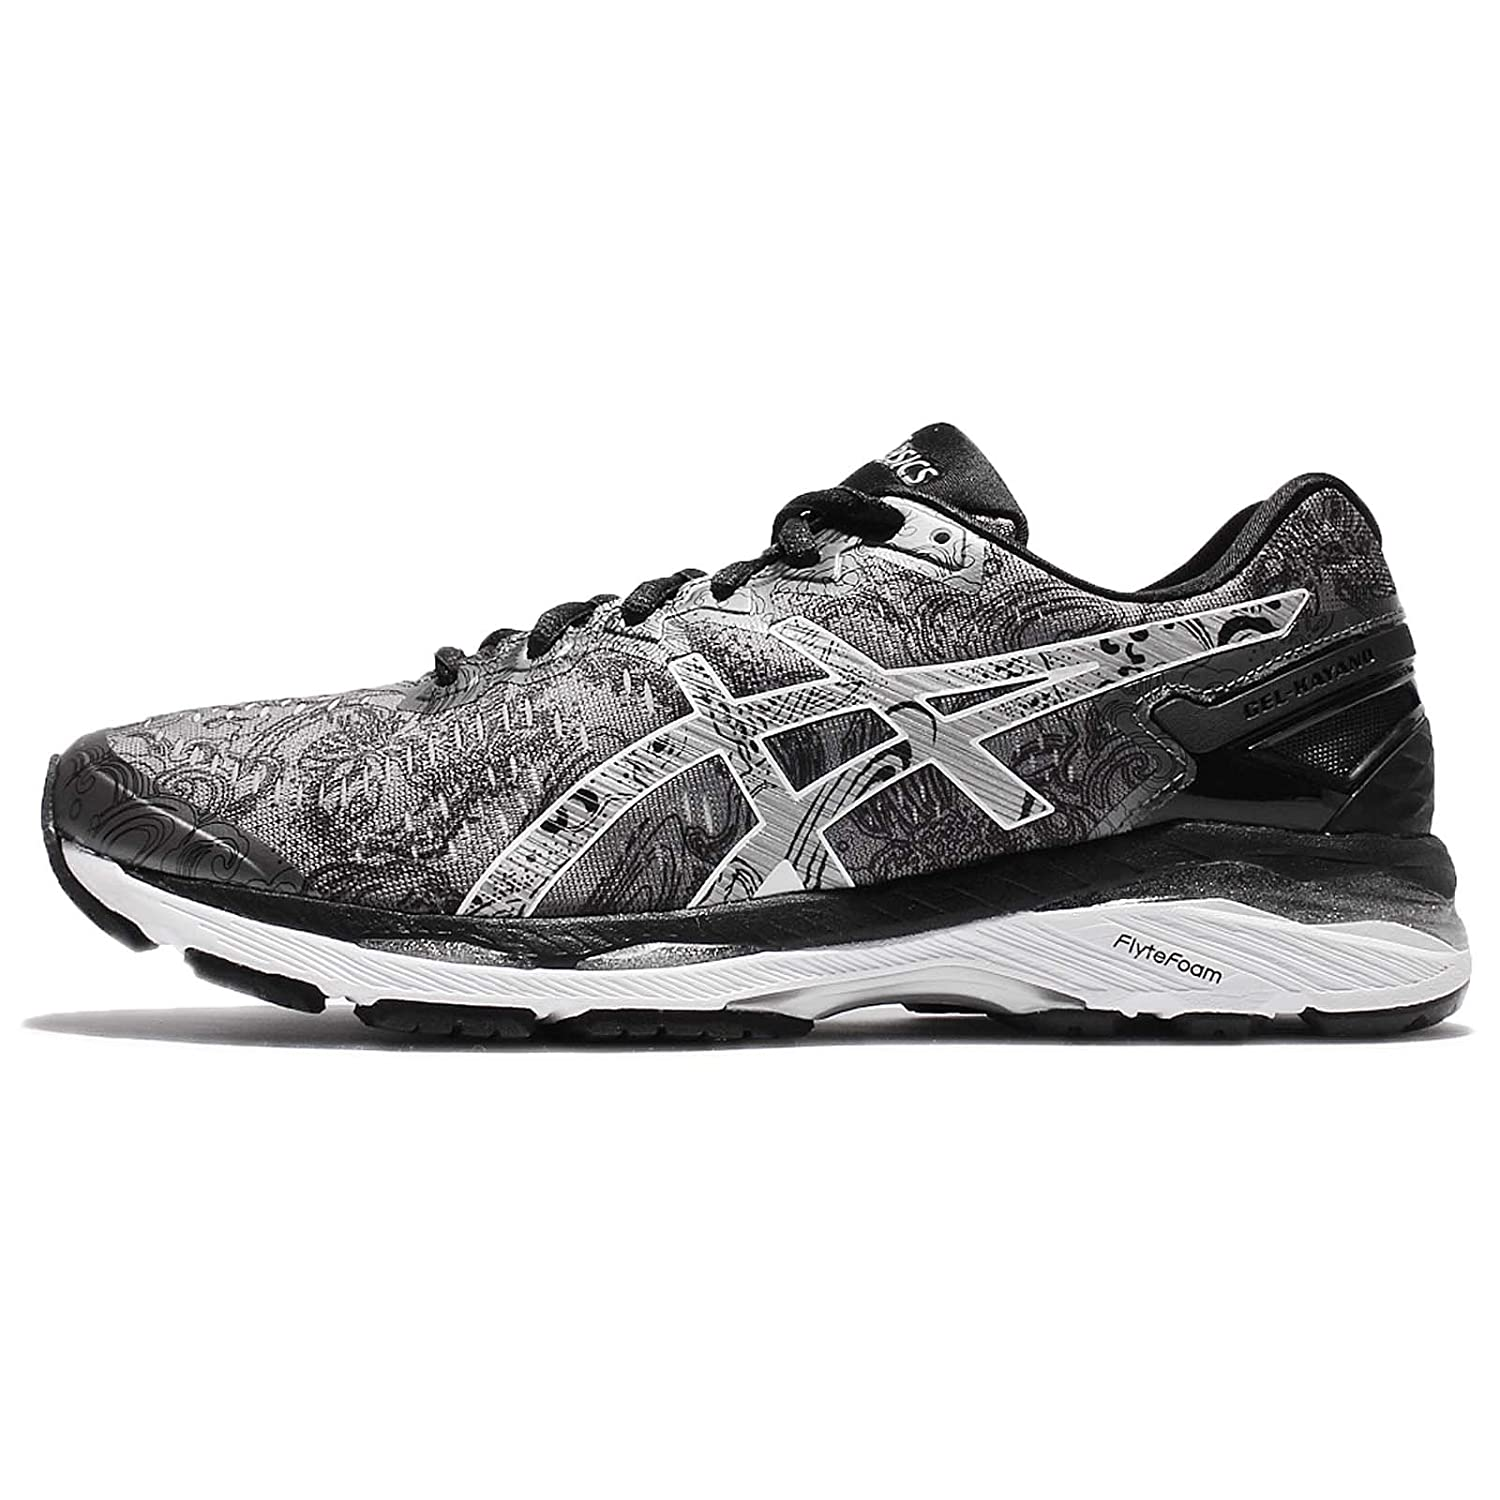 c9dff13618979 ASICS Women's Gel-Kayano 23 Lite-Show Carbon, Silver and Reflective Running  Shoes - 6.5 UK/India (40 EU)(8.5 US): Amazon.in: Shoes & Handbags